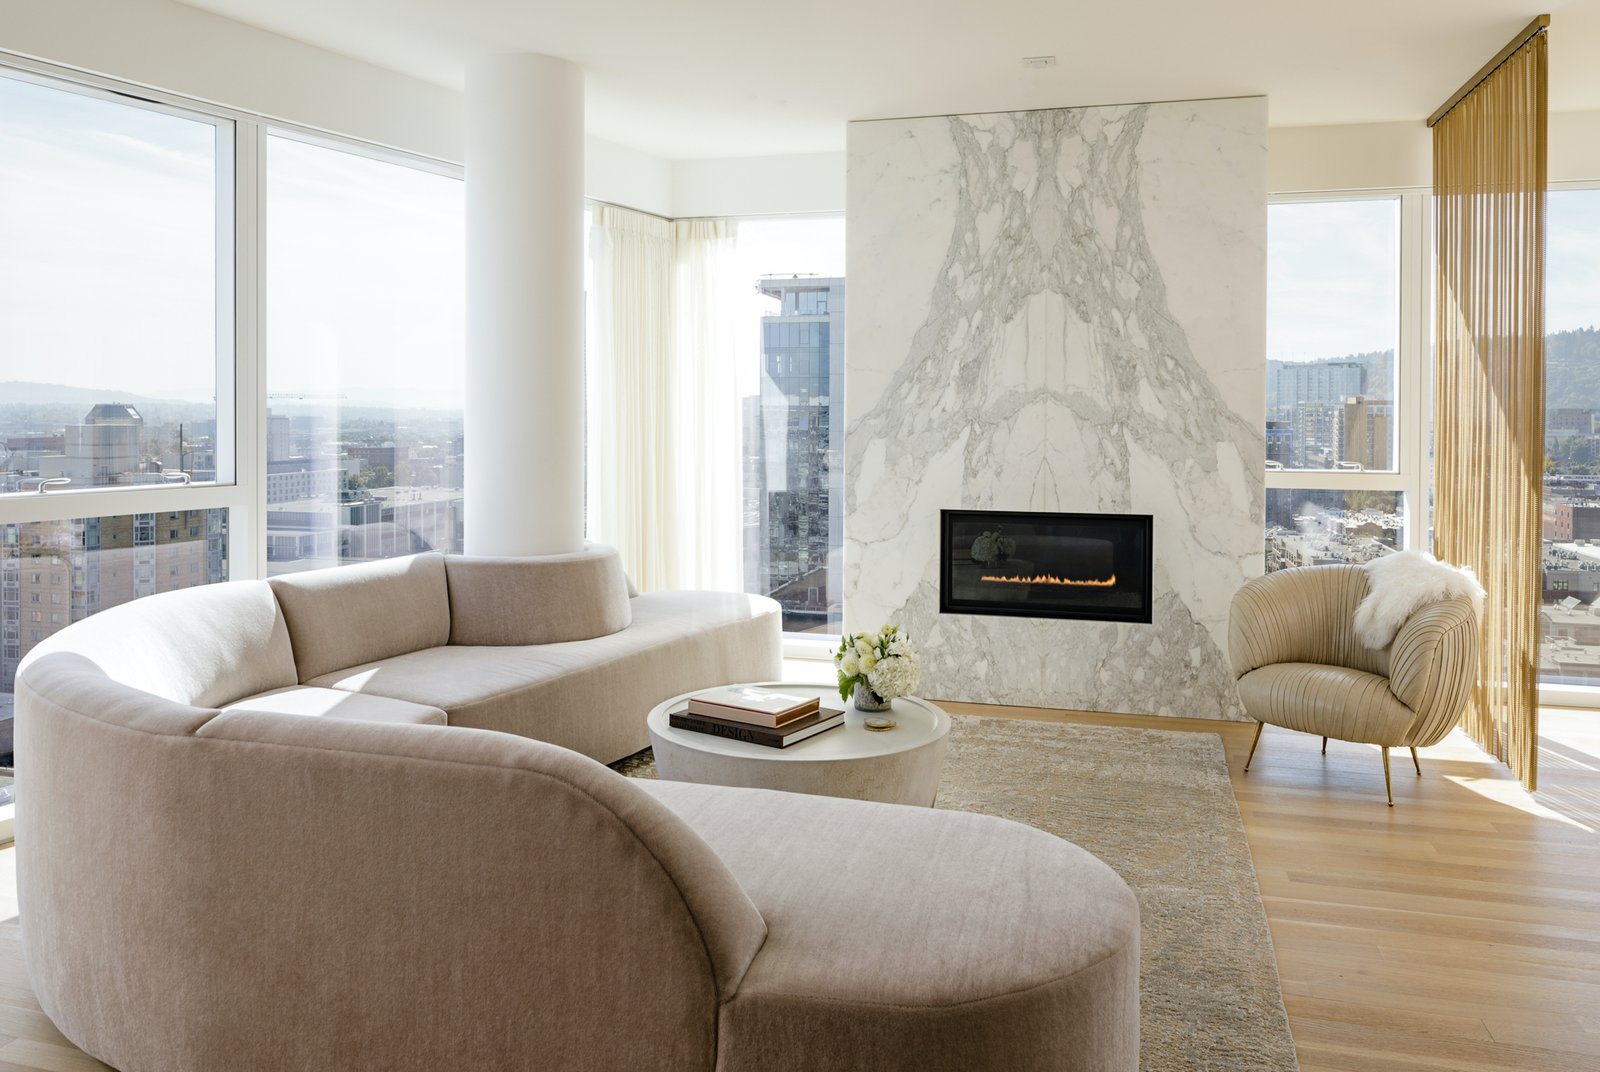 Functional curtains are key in this Portland penthouse by JHL Design, where oversize windows let in abundant sunlight and views.  Photo 2 of 14 in How Much Should You Spend on Curtains?